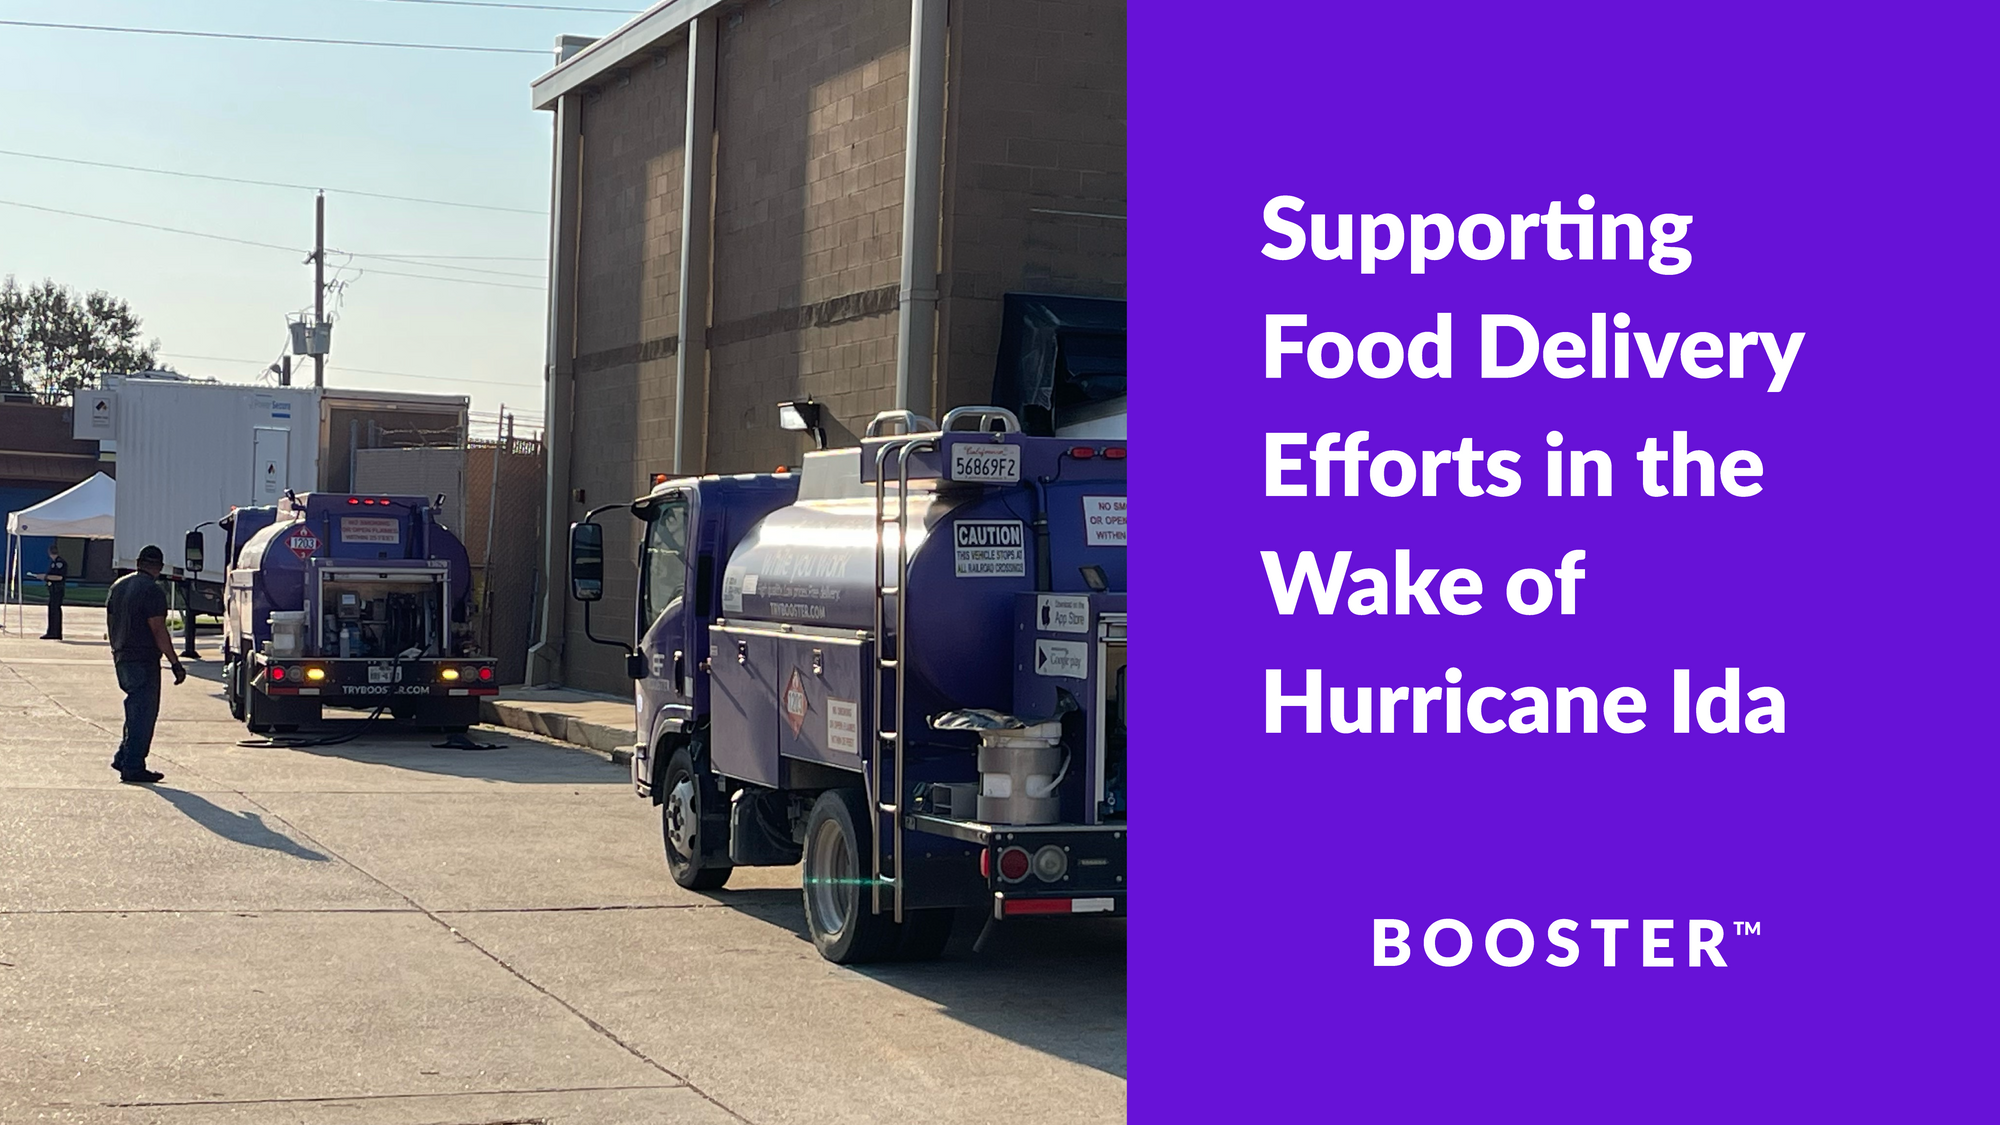 Supporting Food Delivery Efforts in the Wake of Hurricane Ida